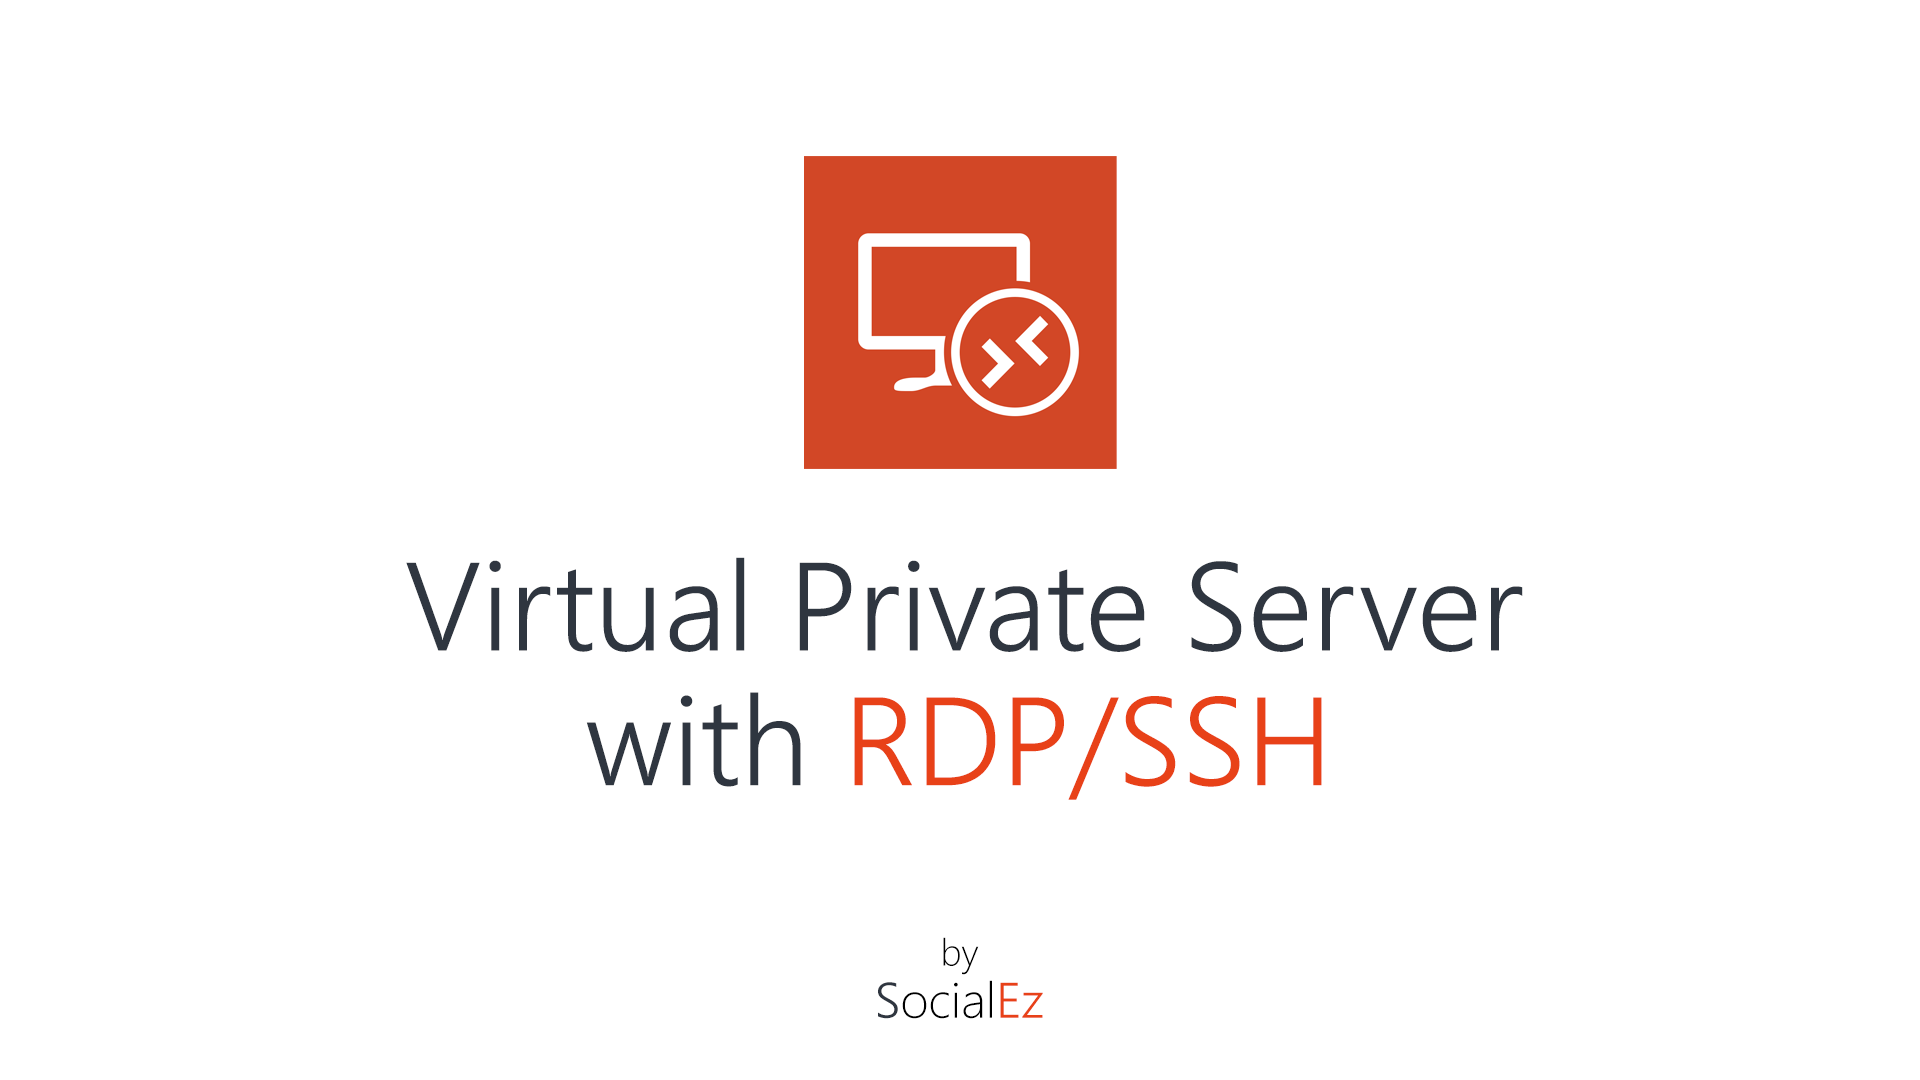 High-End Windows and Linux VPS with RDP/SSH Support Mining